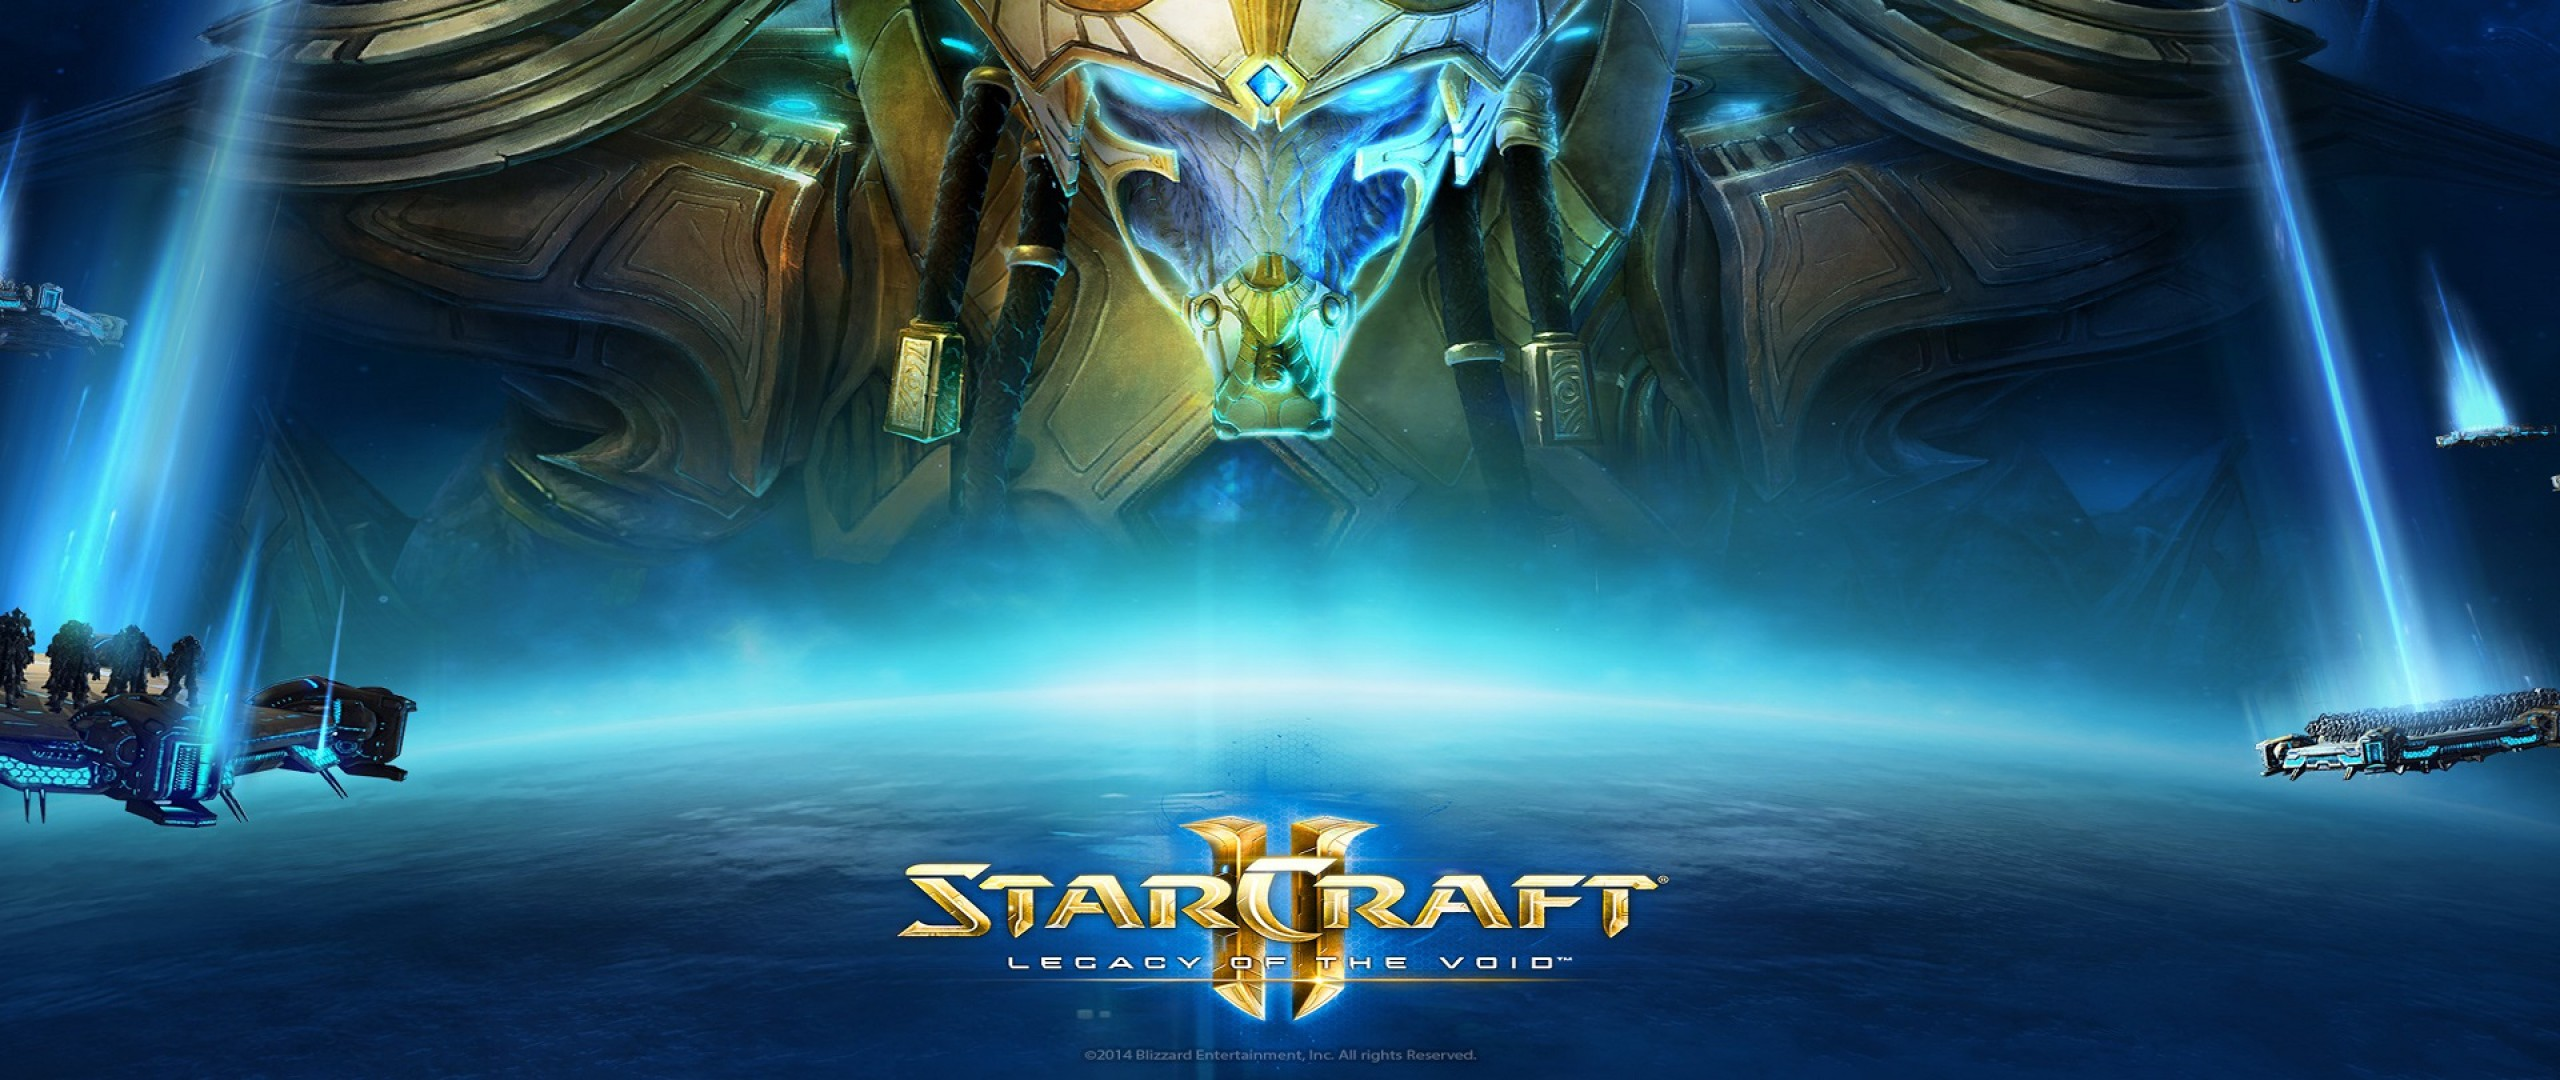 2560x1080 StarCraft 2: Legacy of the Void Dual Monitor Wallpaper